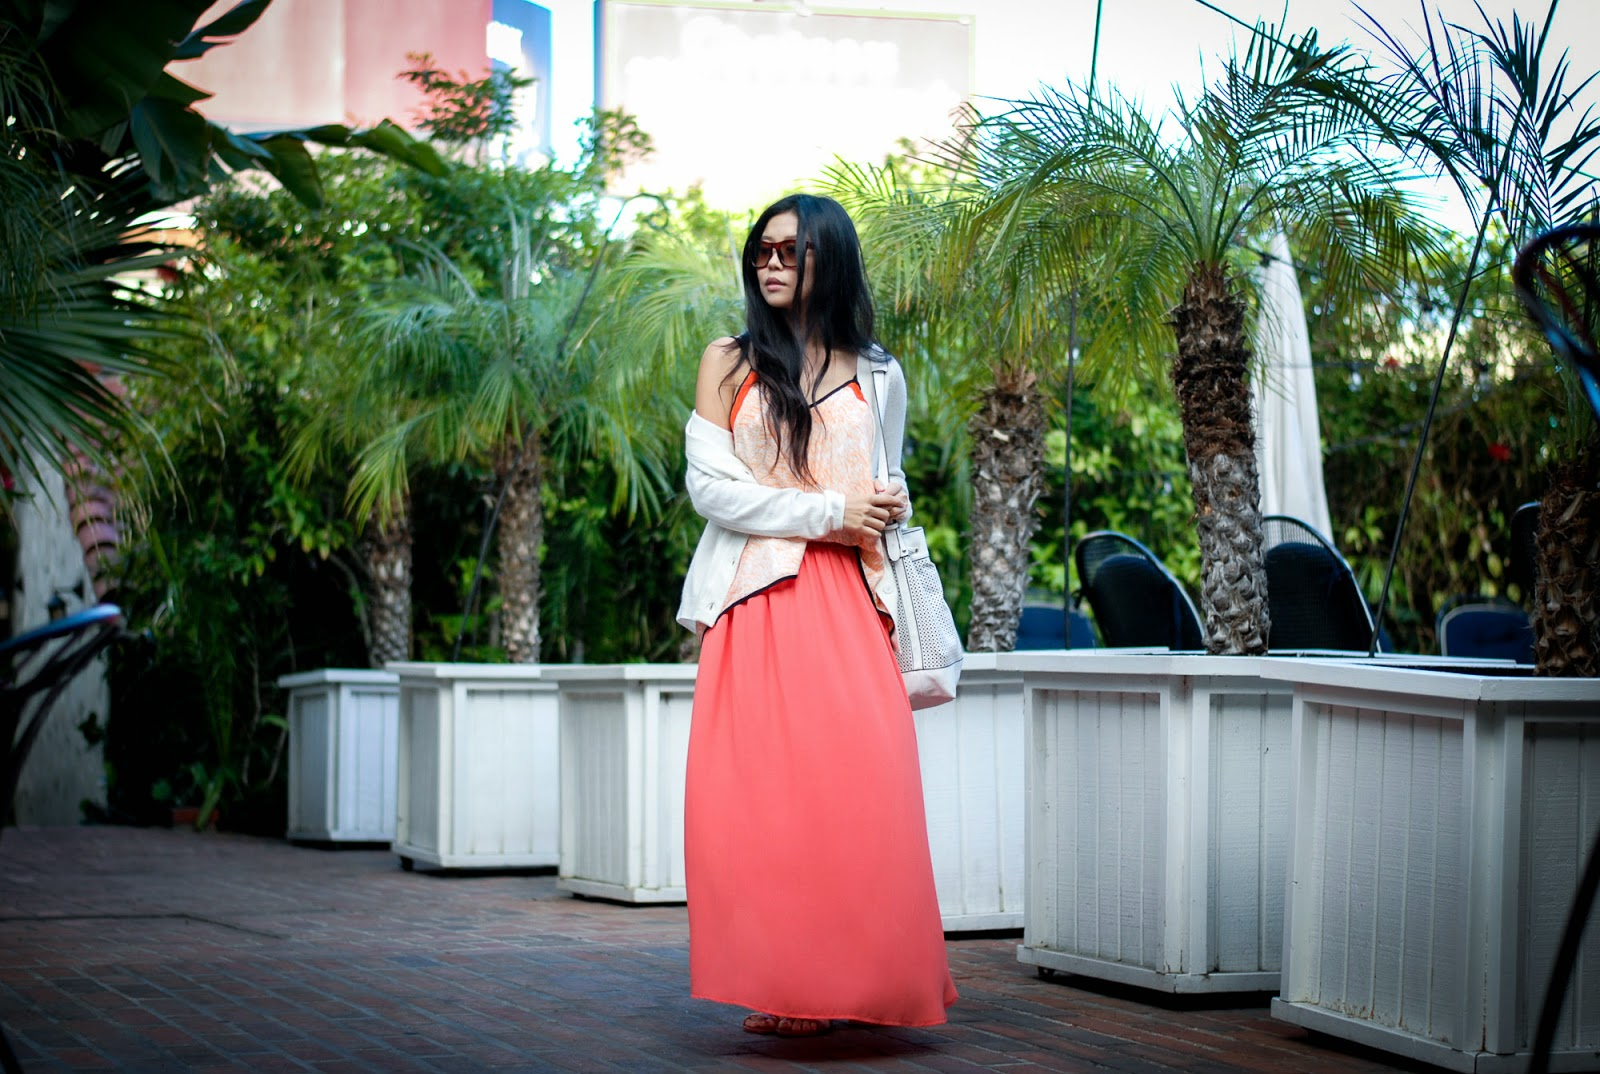 LA style and beauty blogger Jenny Wu